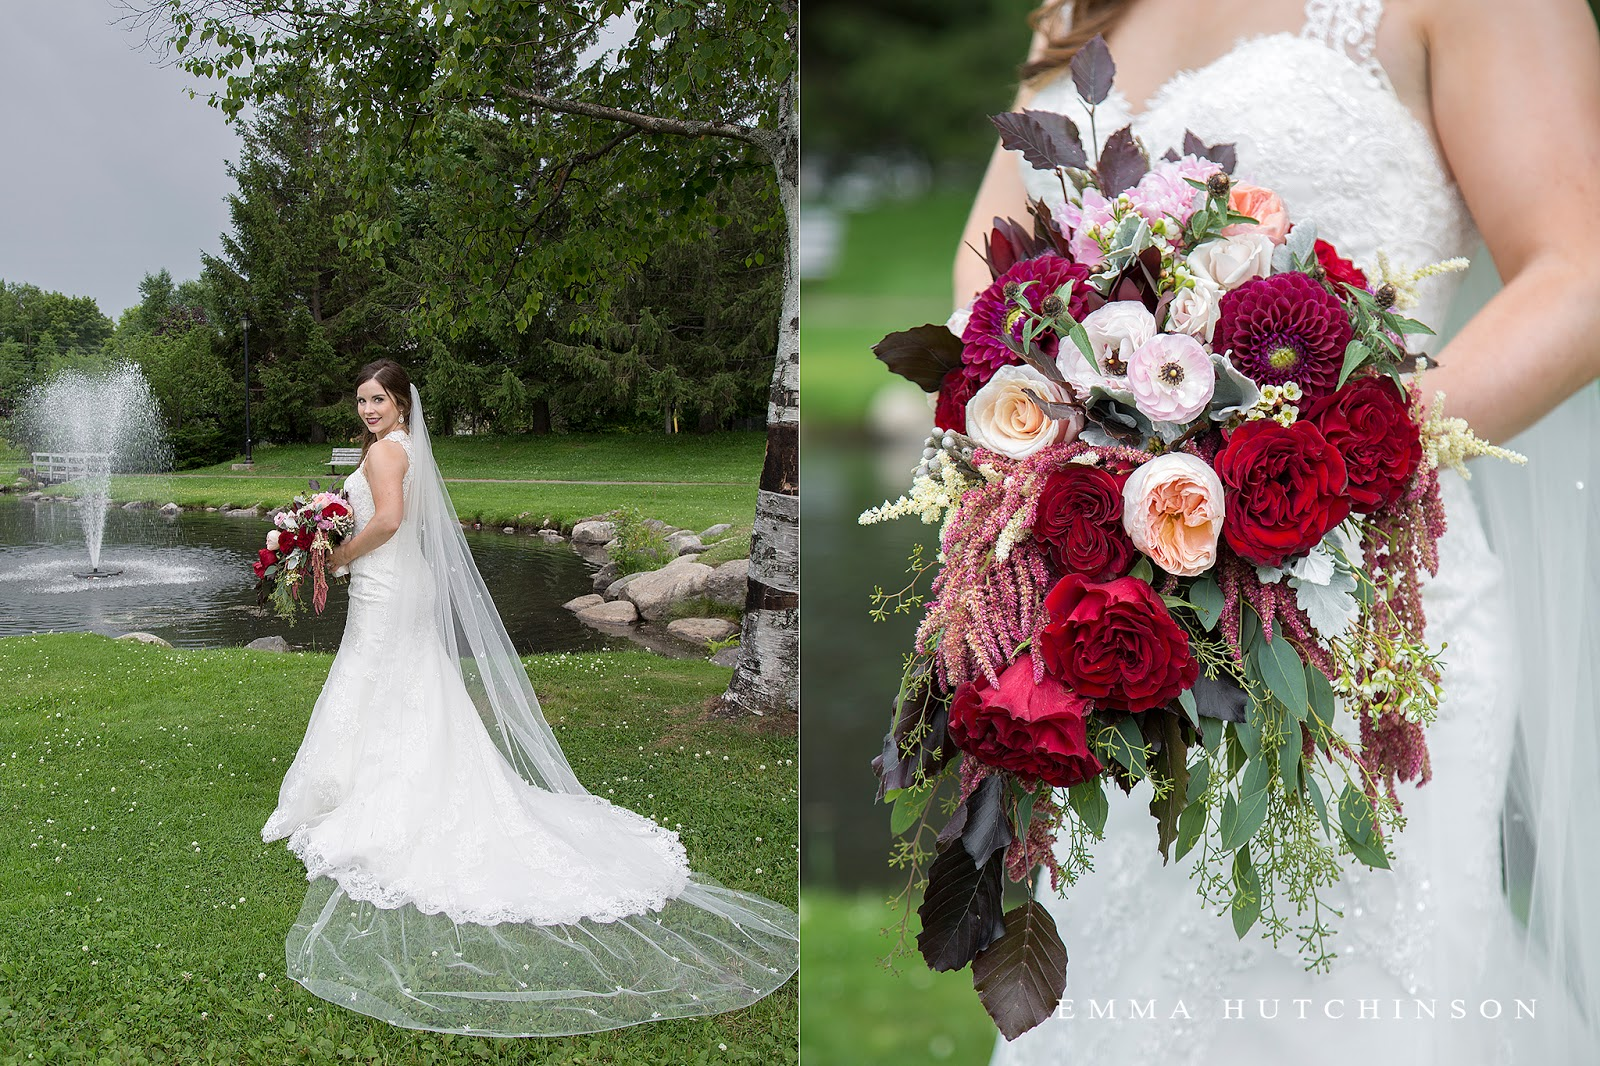 wedding bridal bouquet of peonies, dahlias and garden roses by event 3sixty